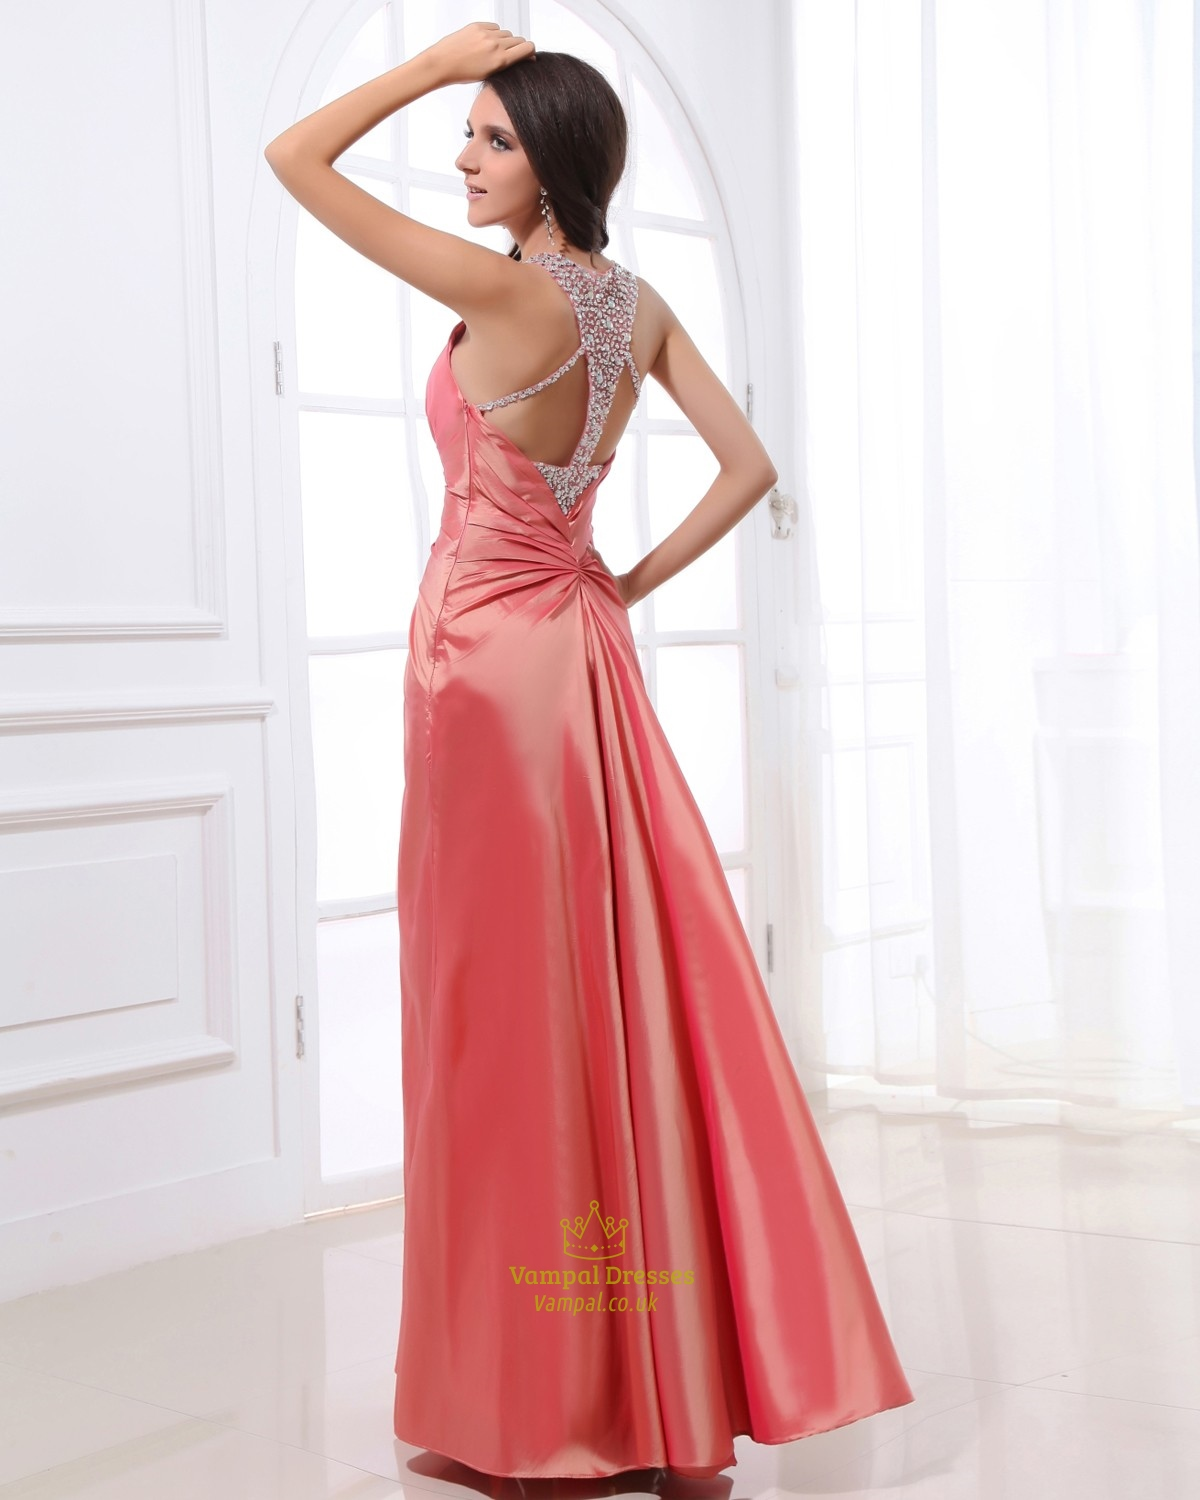 Coral Prom Dresses With Beaded Straps,Pink Salmon Prom ... Salmon Prom Dresses 2013